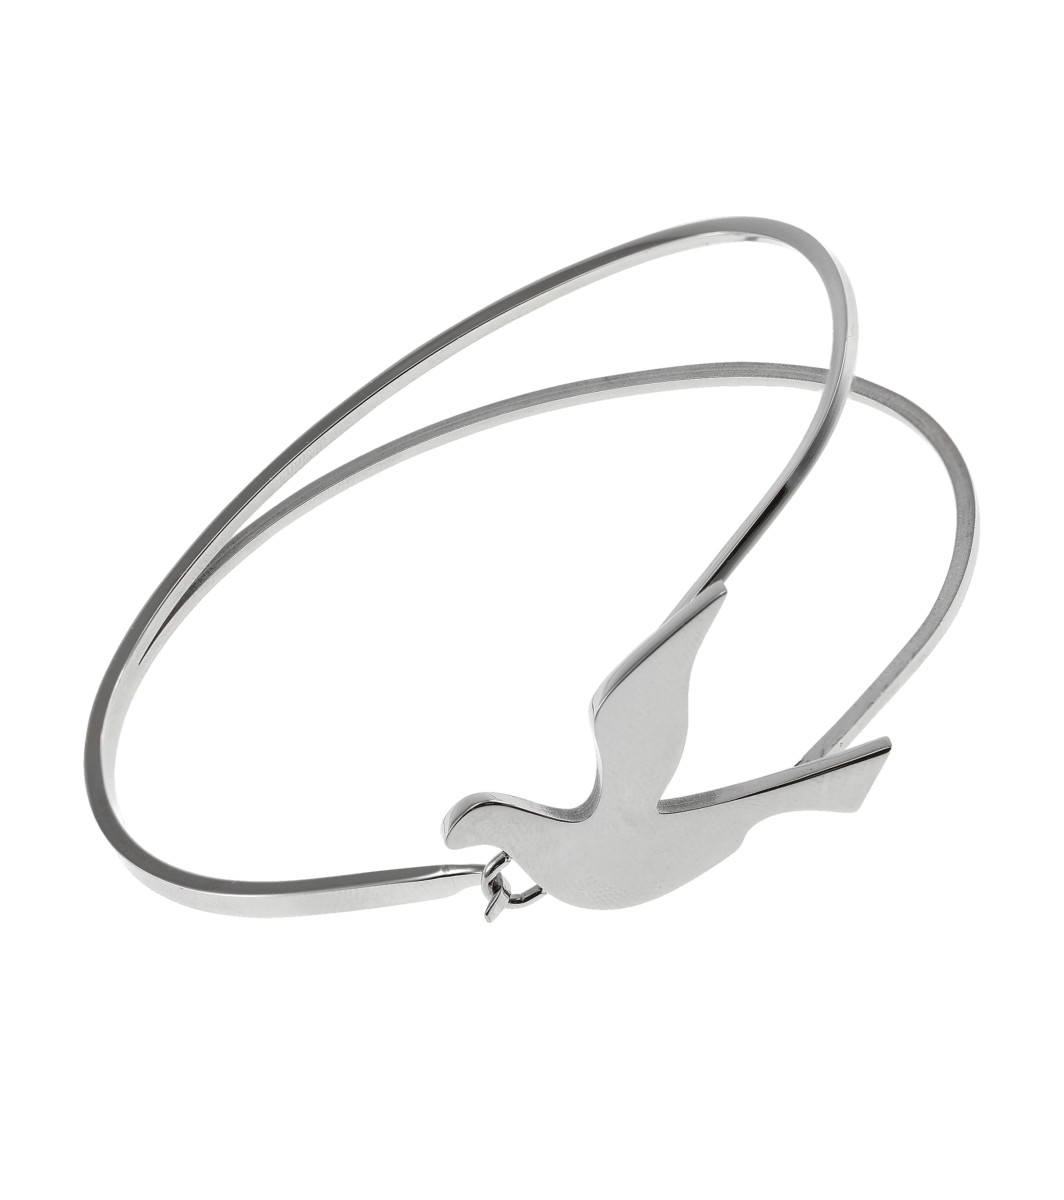 Edblad_Dove_bangle_steel £36